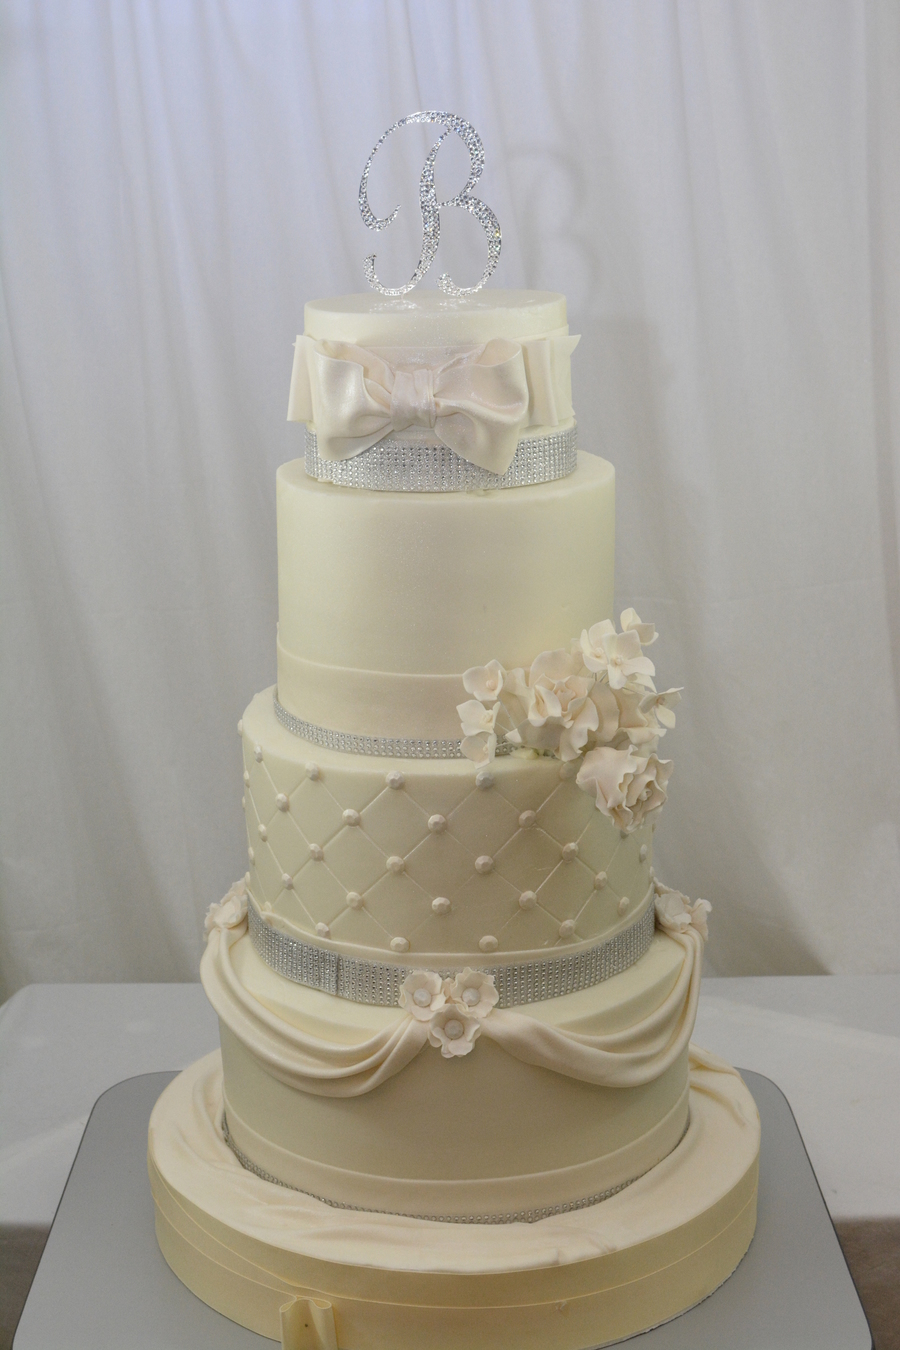 This Was A Very Large Cake Too Large To Move In To A Good Spot For Taking Pictures Finished In Buttercream With Fondant Bow Swags And Gump... on Cake Central